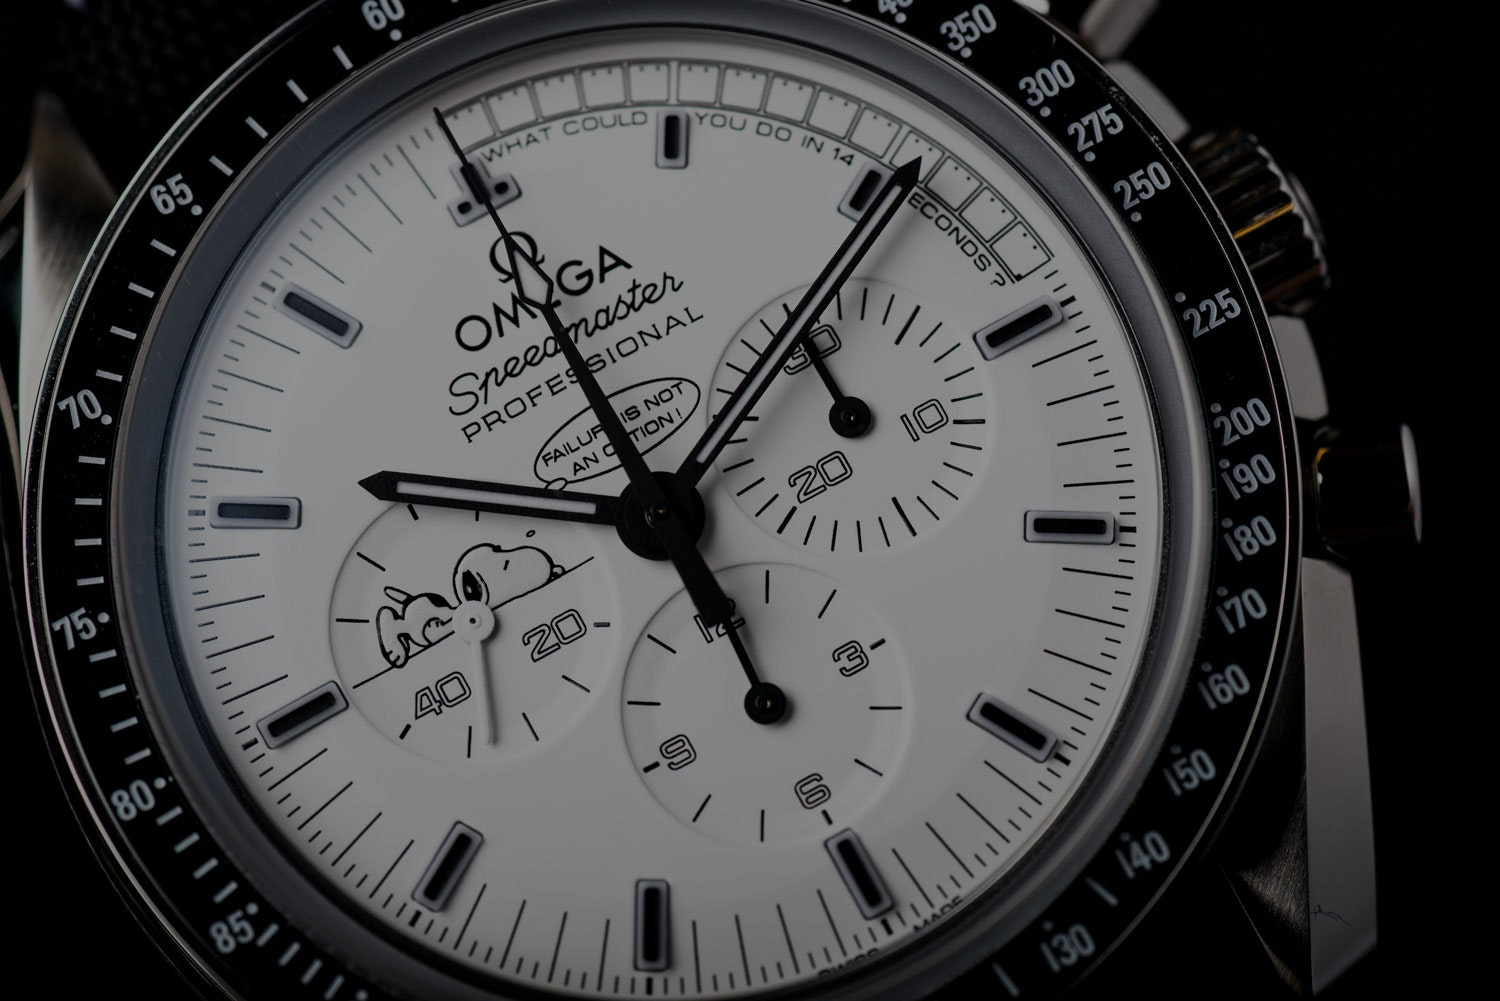 Sourced: Die Speedmaster Apollo 13 Silver Snoopy Award